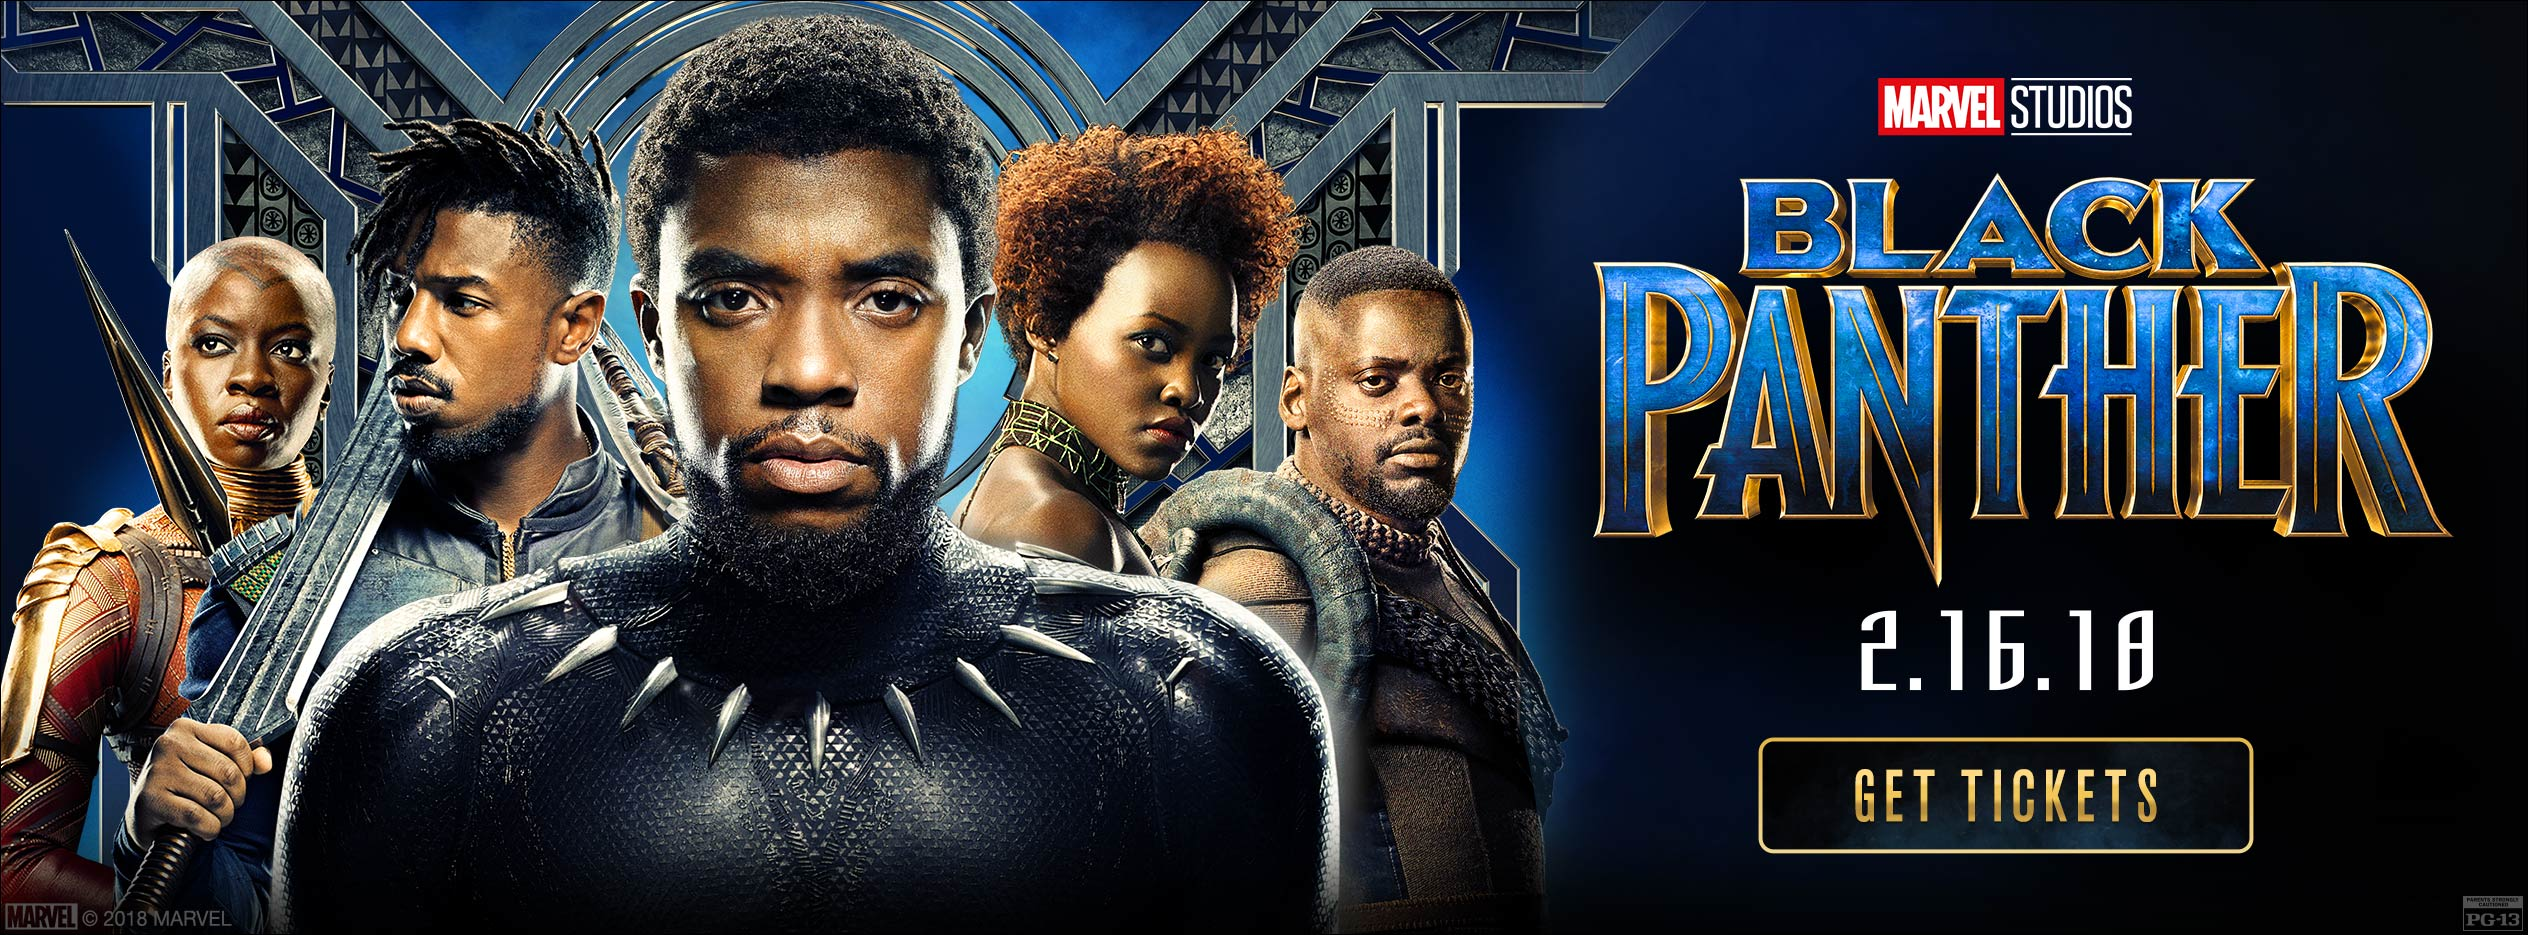 Black-Panther-Trailer-and-Info